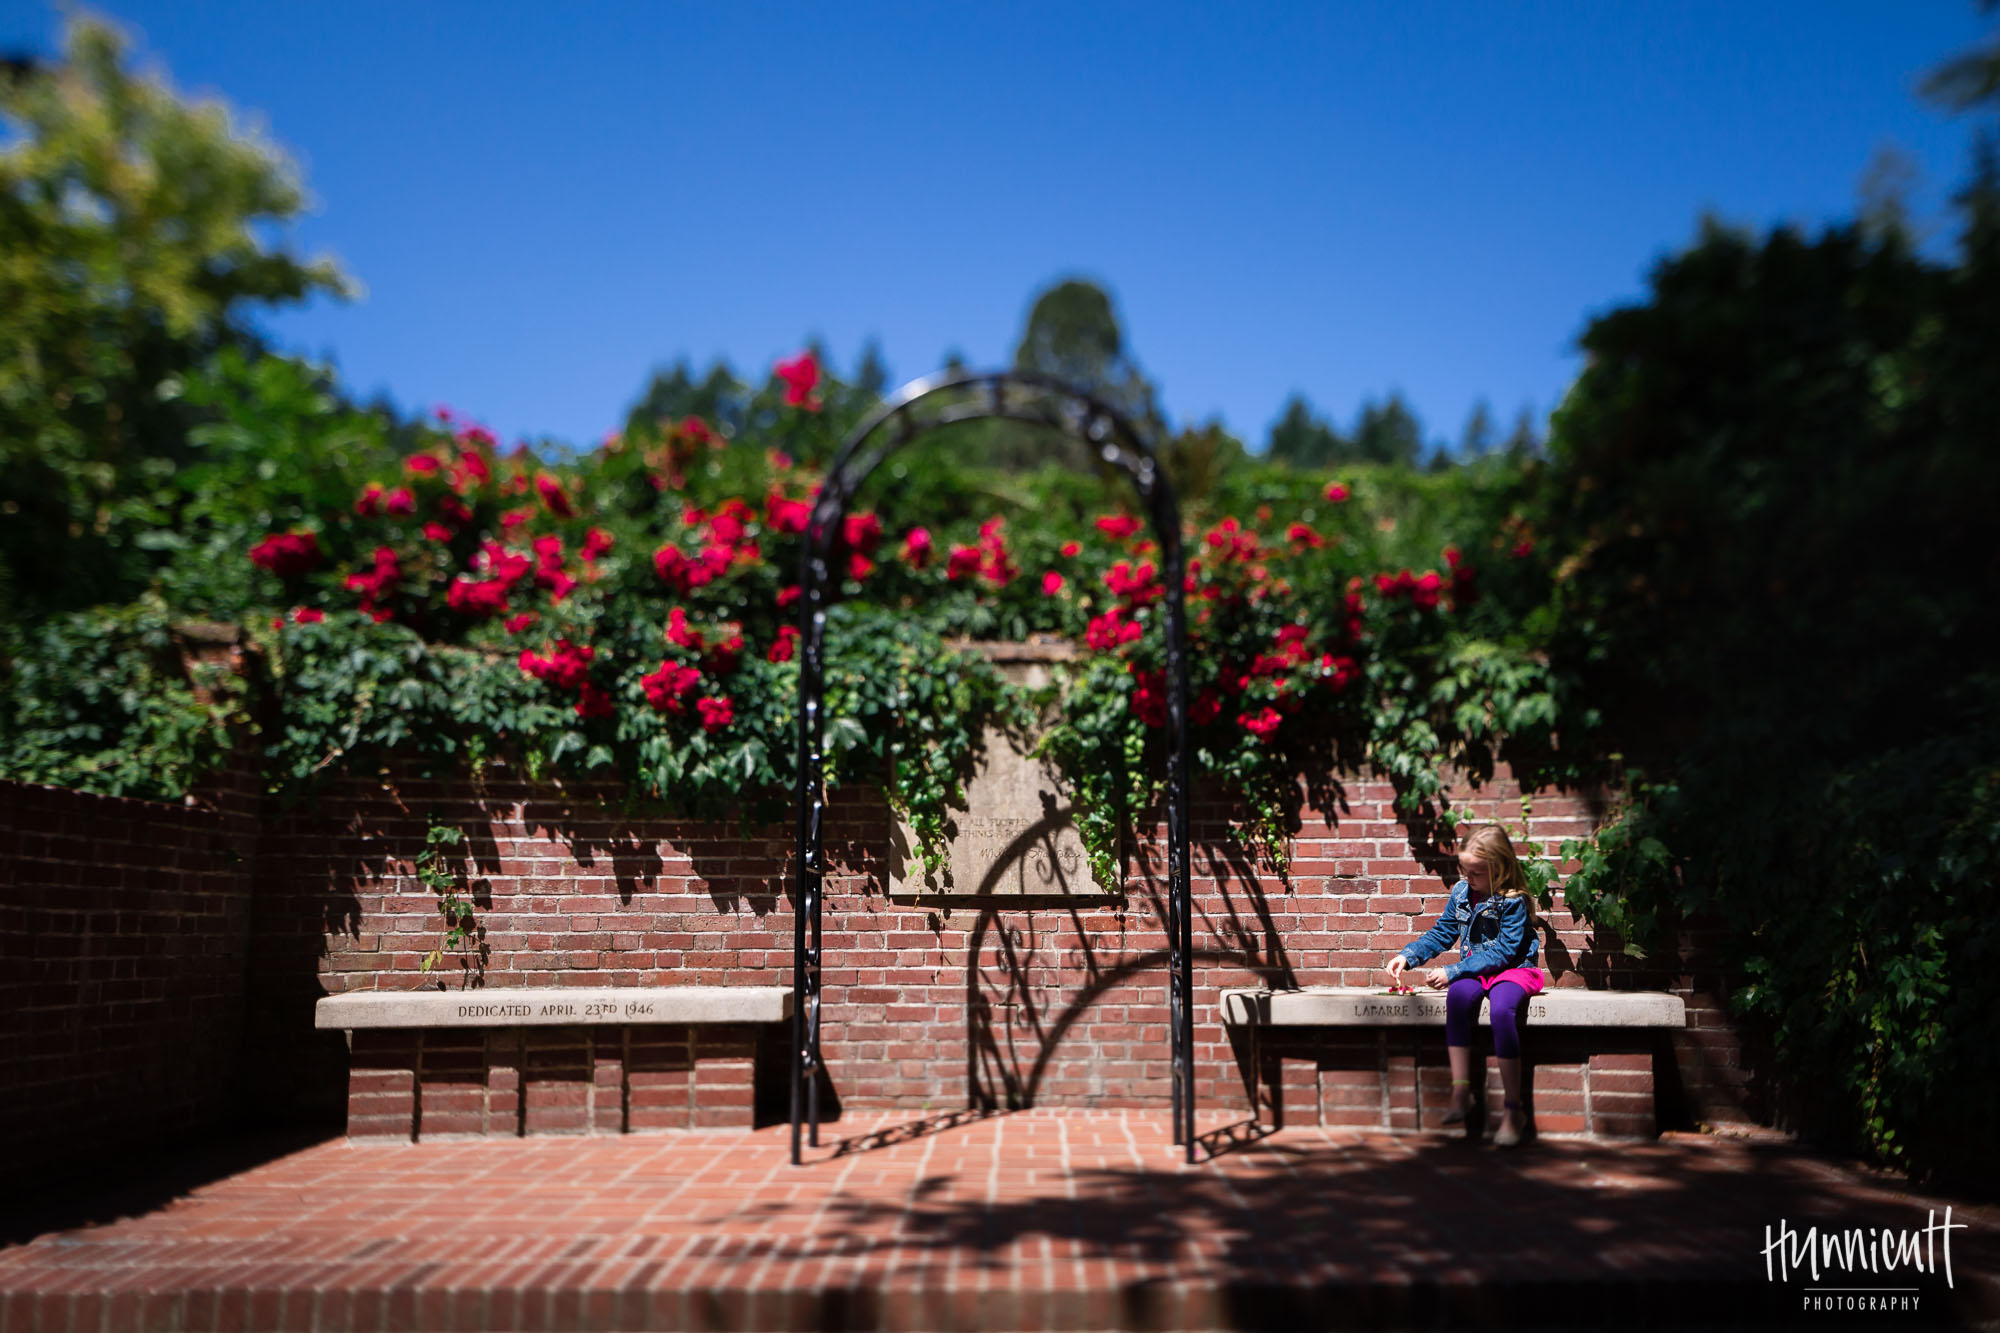 girl_with_red_flowers_portland_rose_garden_rebecca_hunnicutt_farren-2